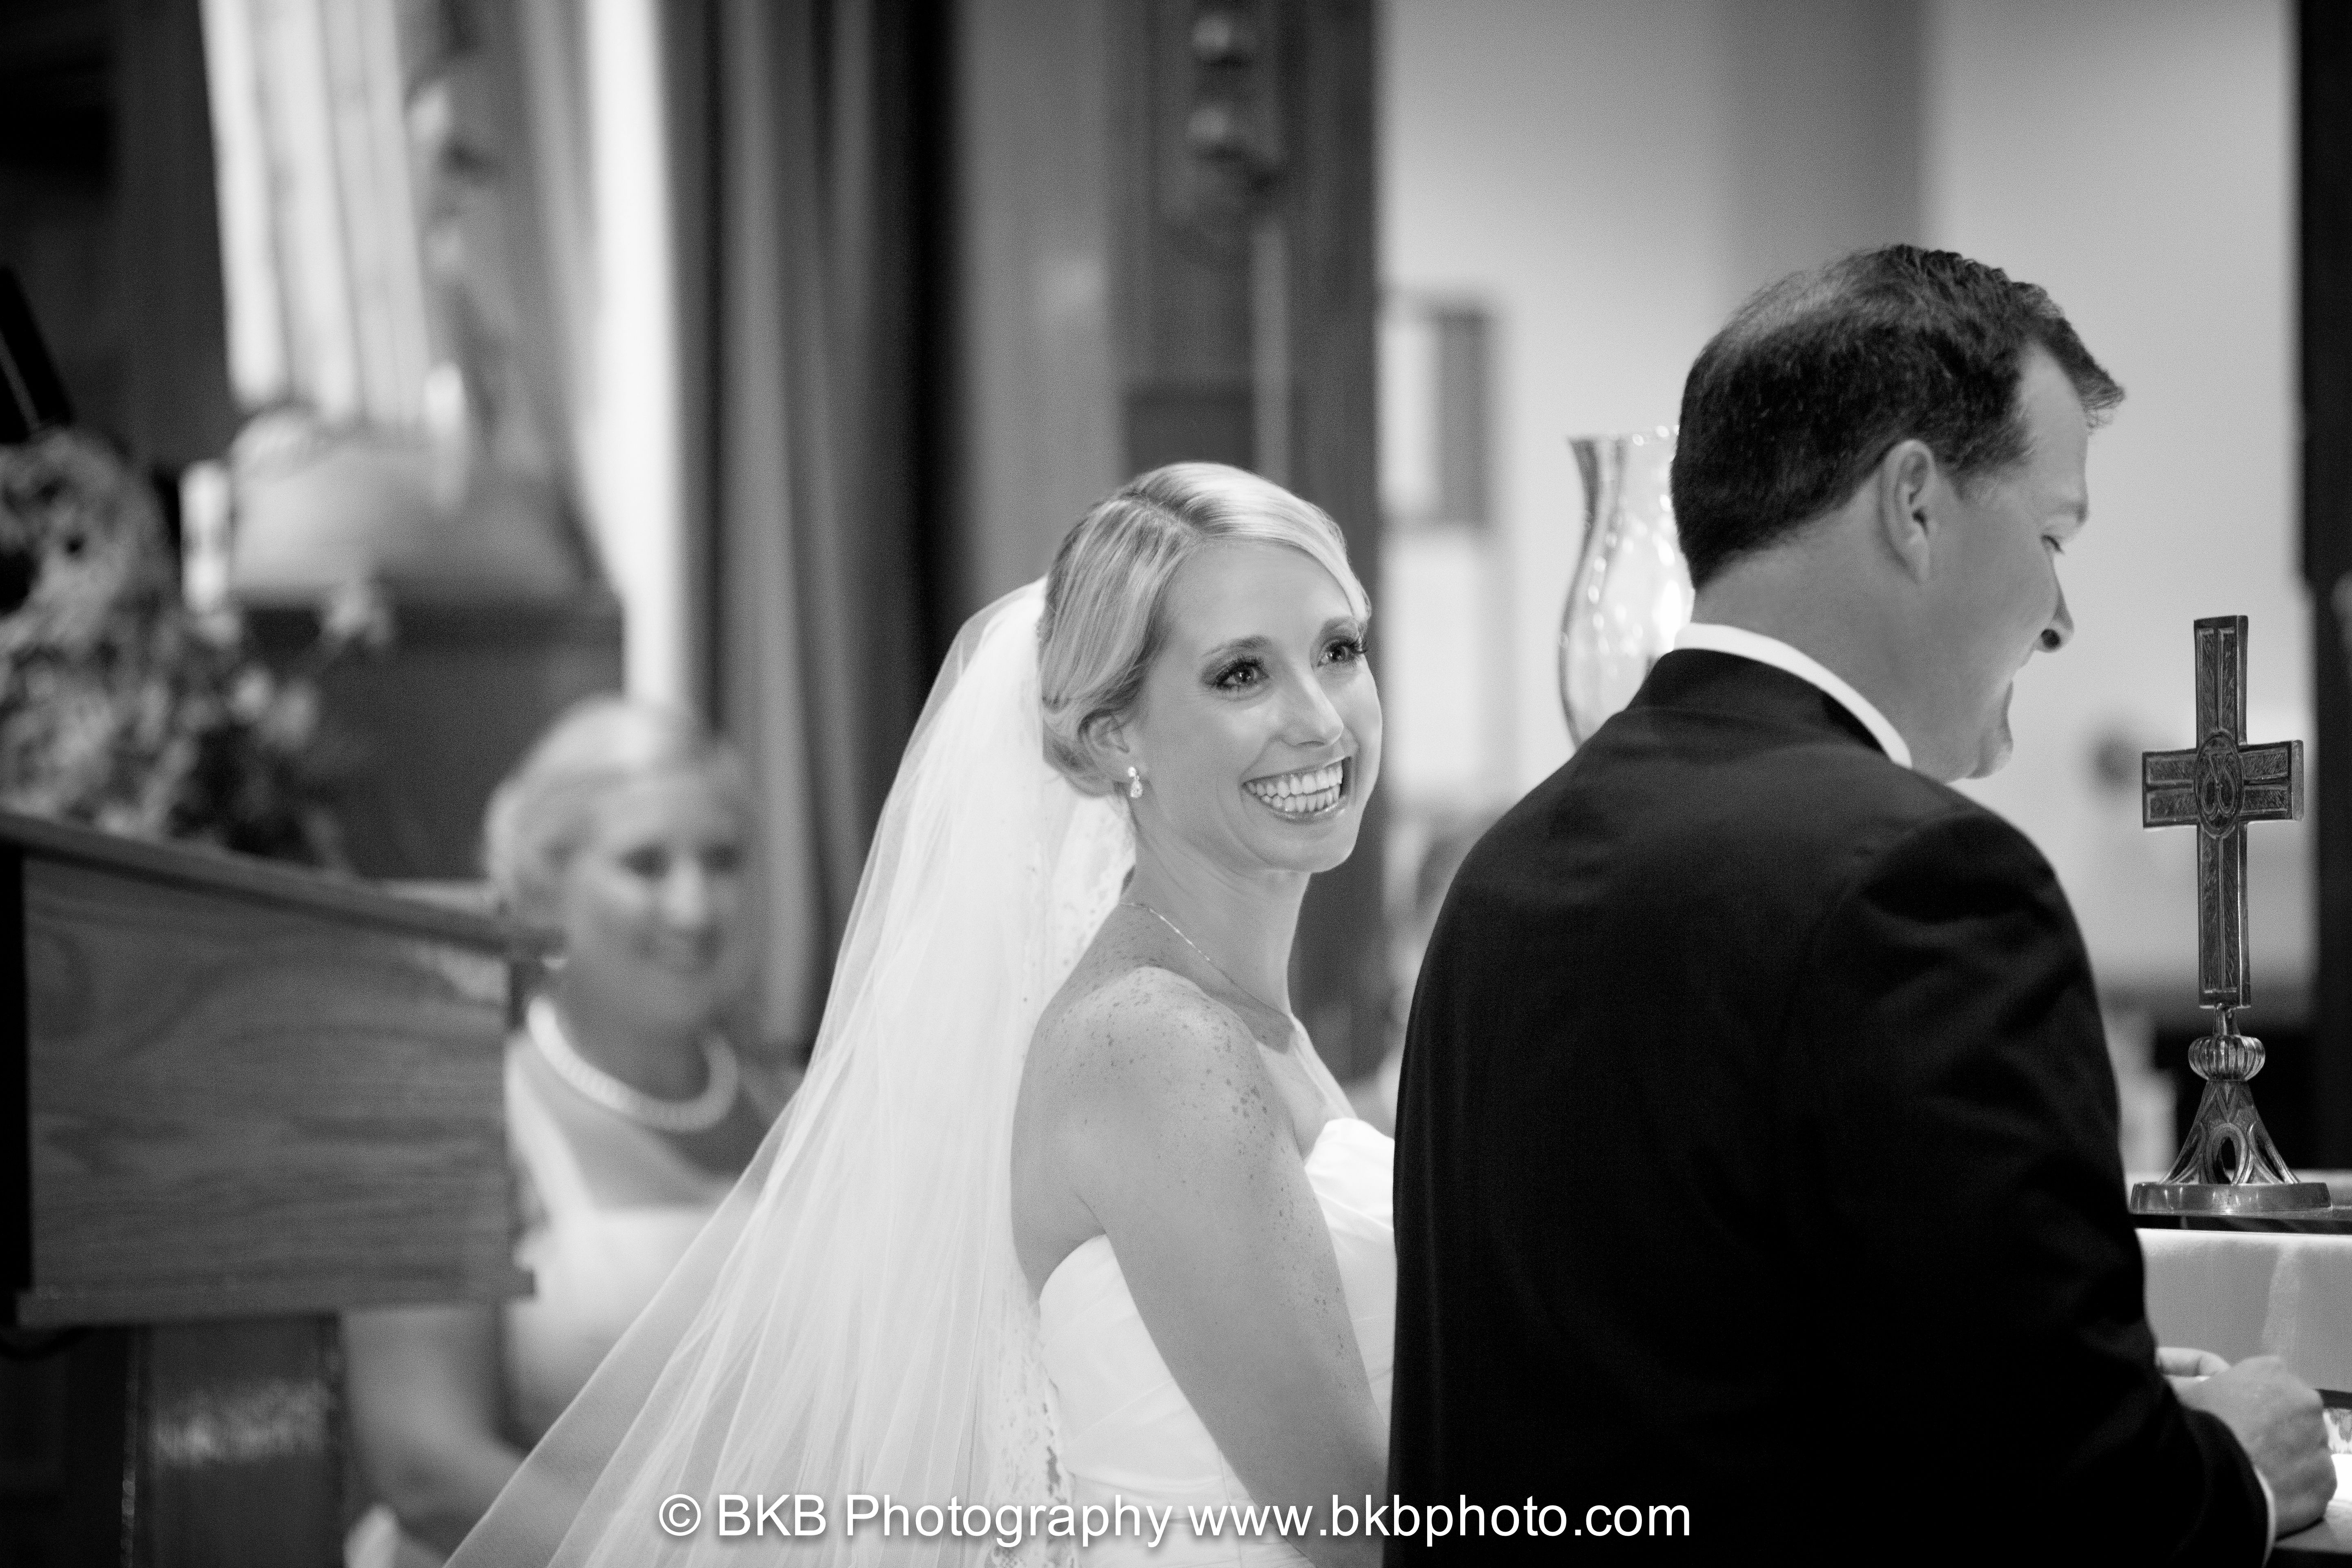 One Of The Most Asked Questions I Get From Boston Area Brides Is How Do Go About Finding A Wedding Photographer Your